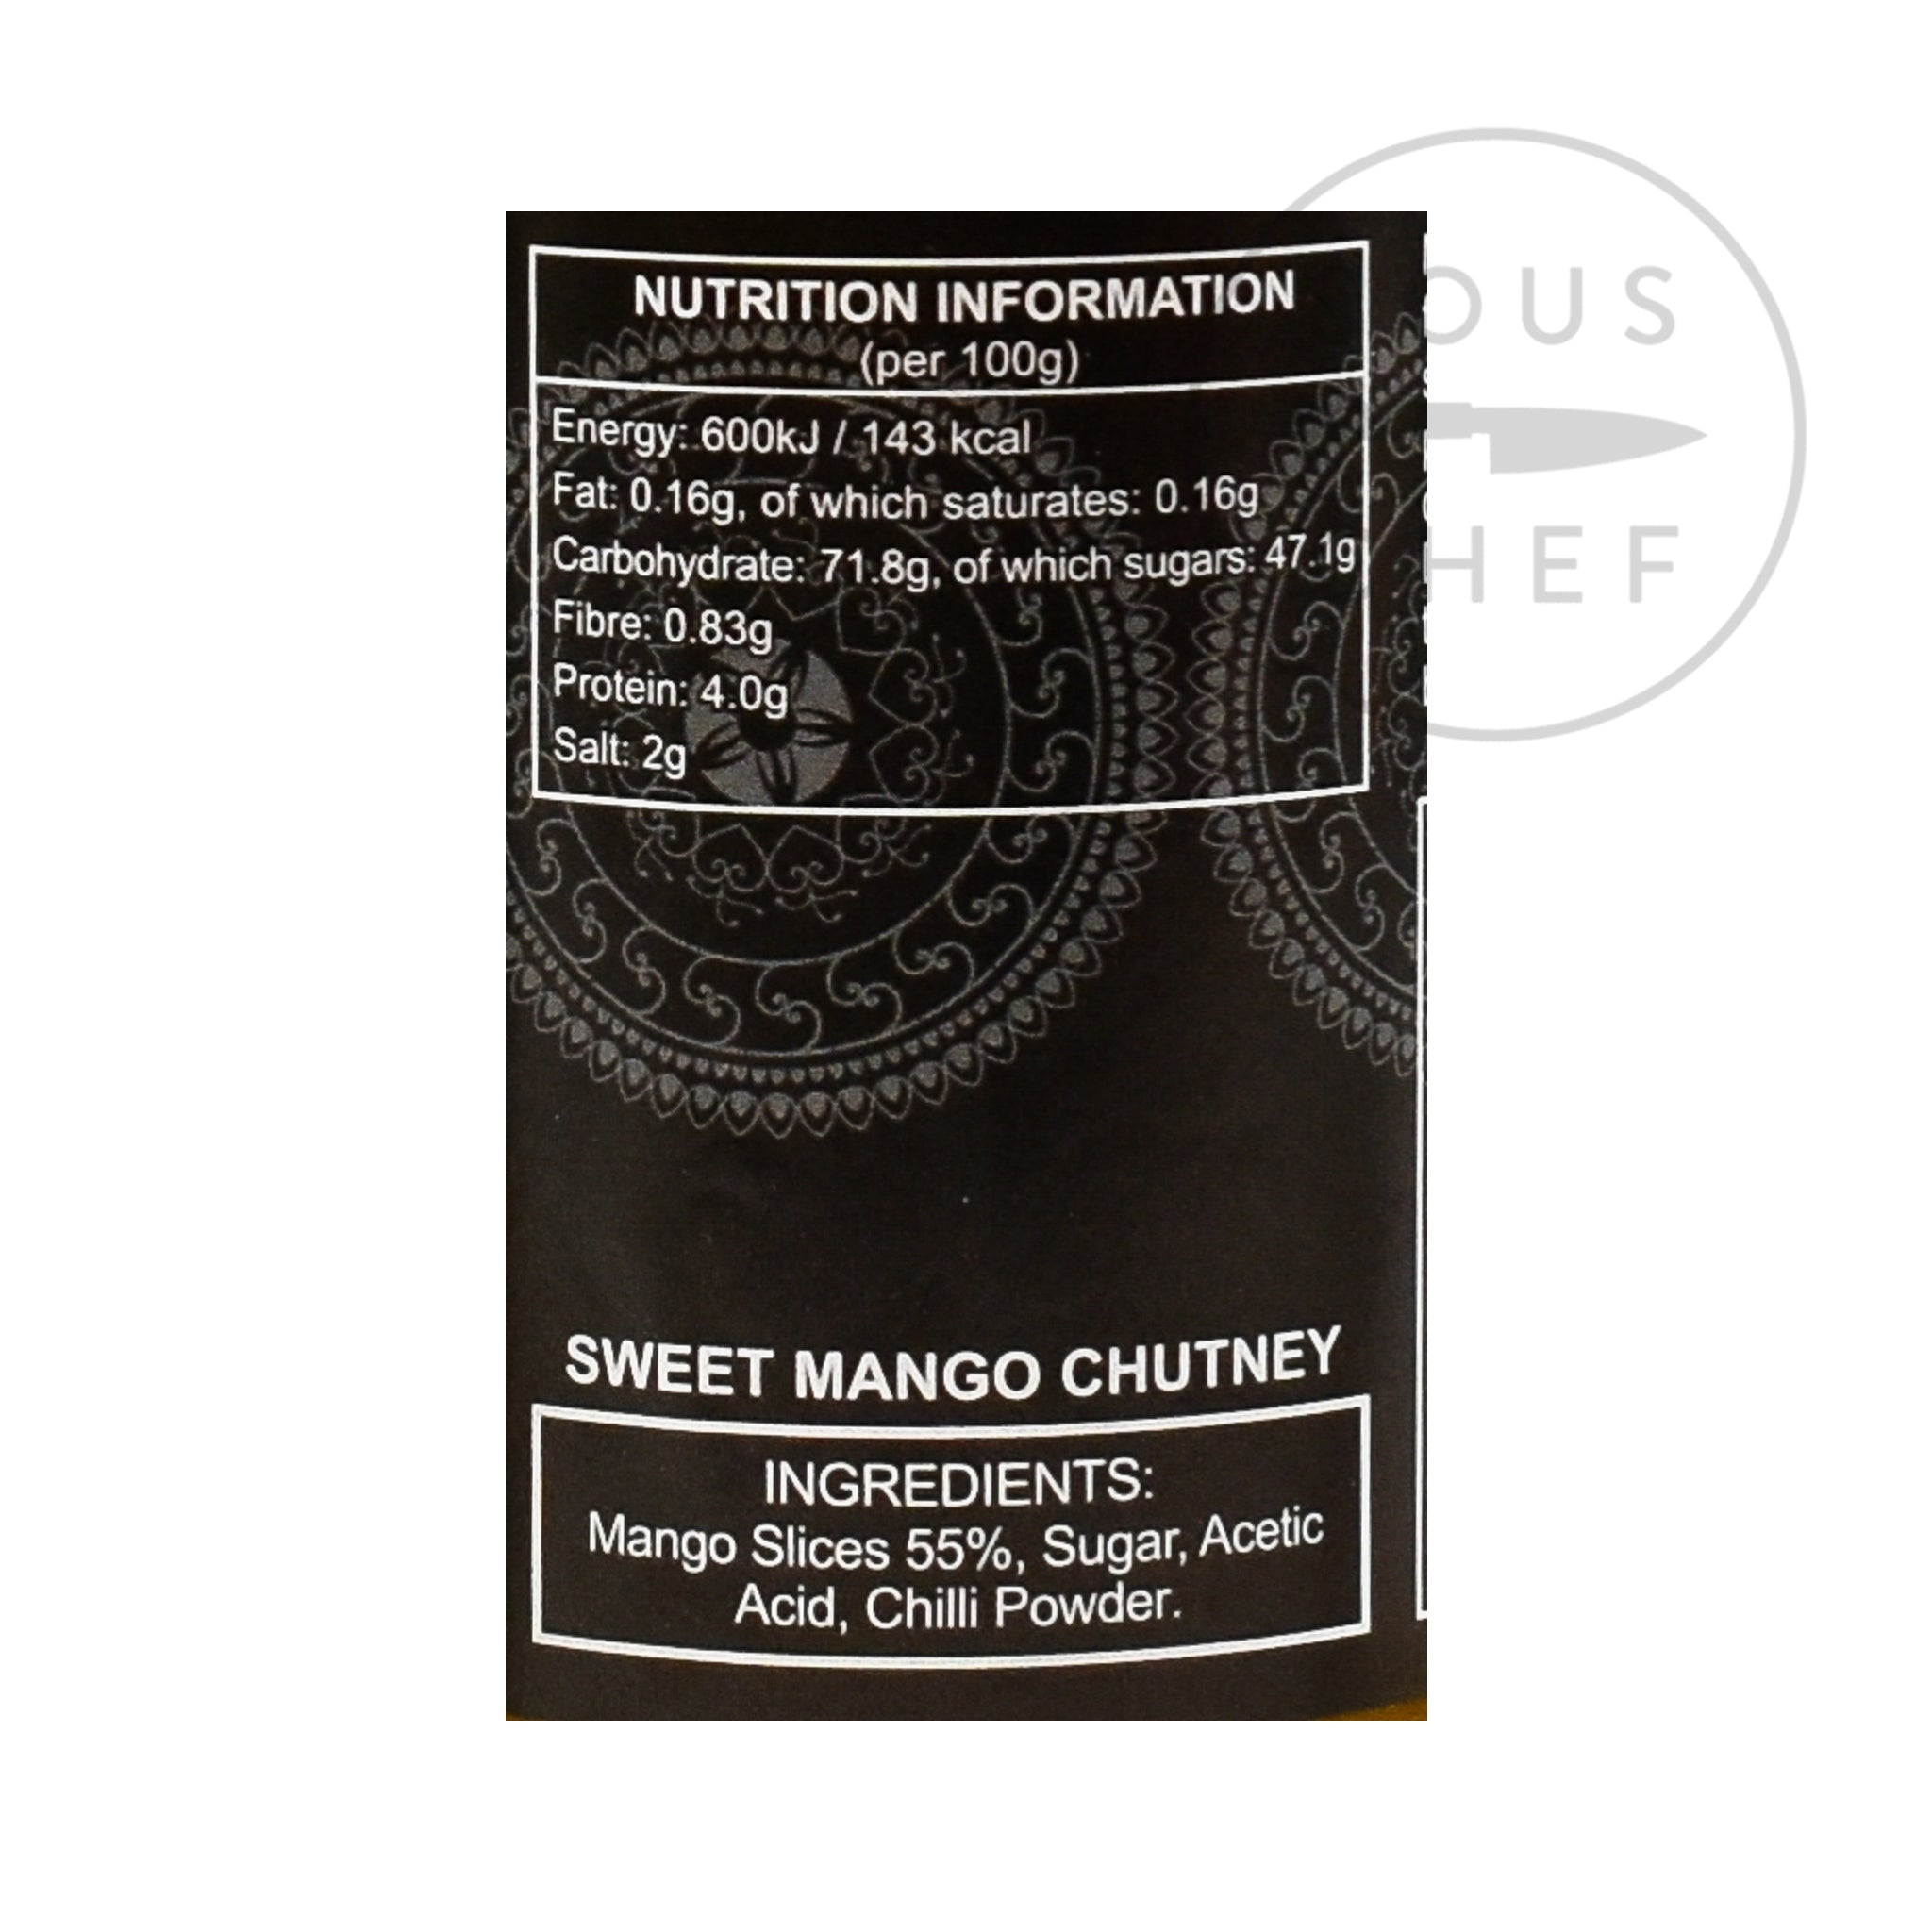 Ferns' Sweet Mango Chutney 440g nutritional information ingredients